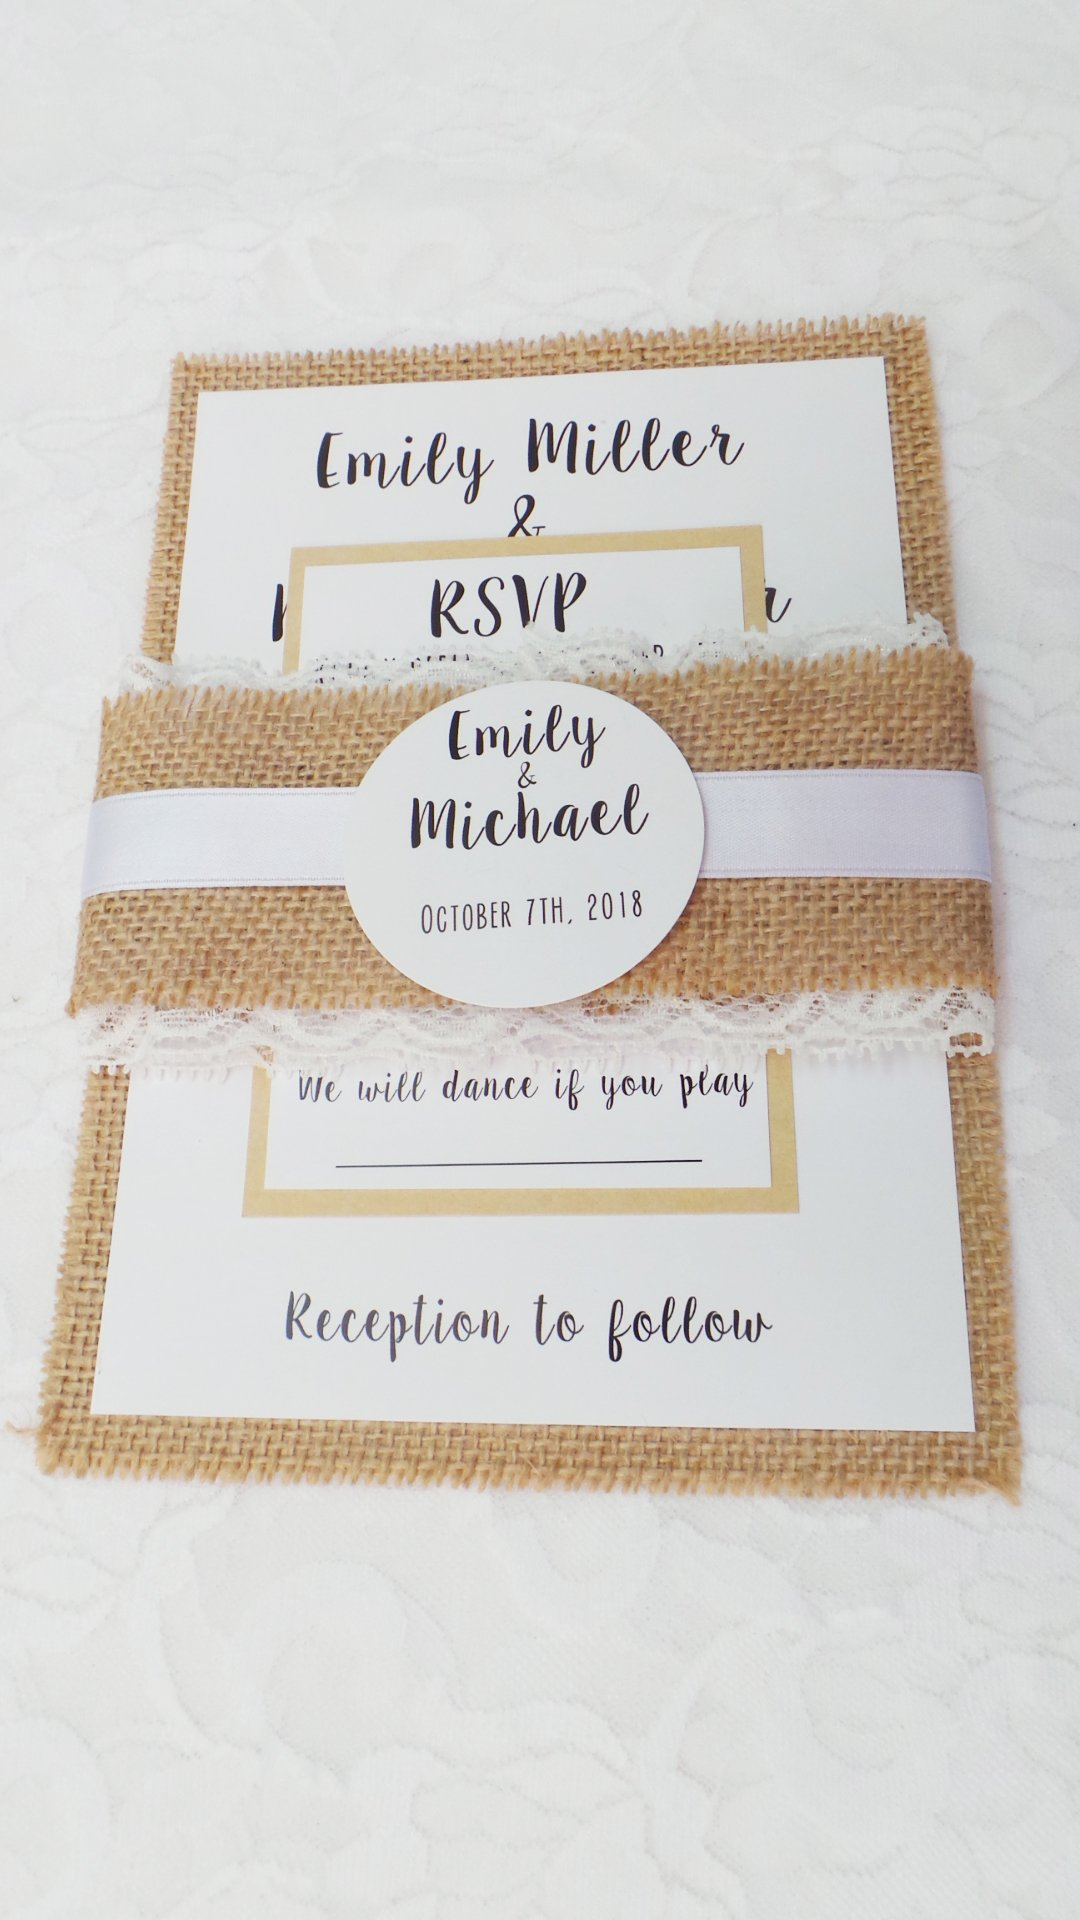 100 Wedding Invitations Rustic Country Style Burlap Lace Belly Band + Envelopes + Response Cards Set